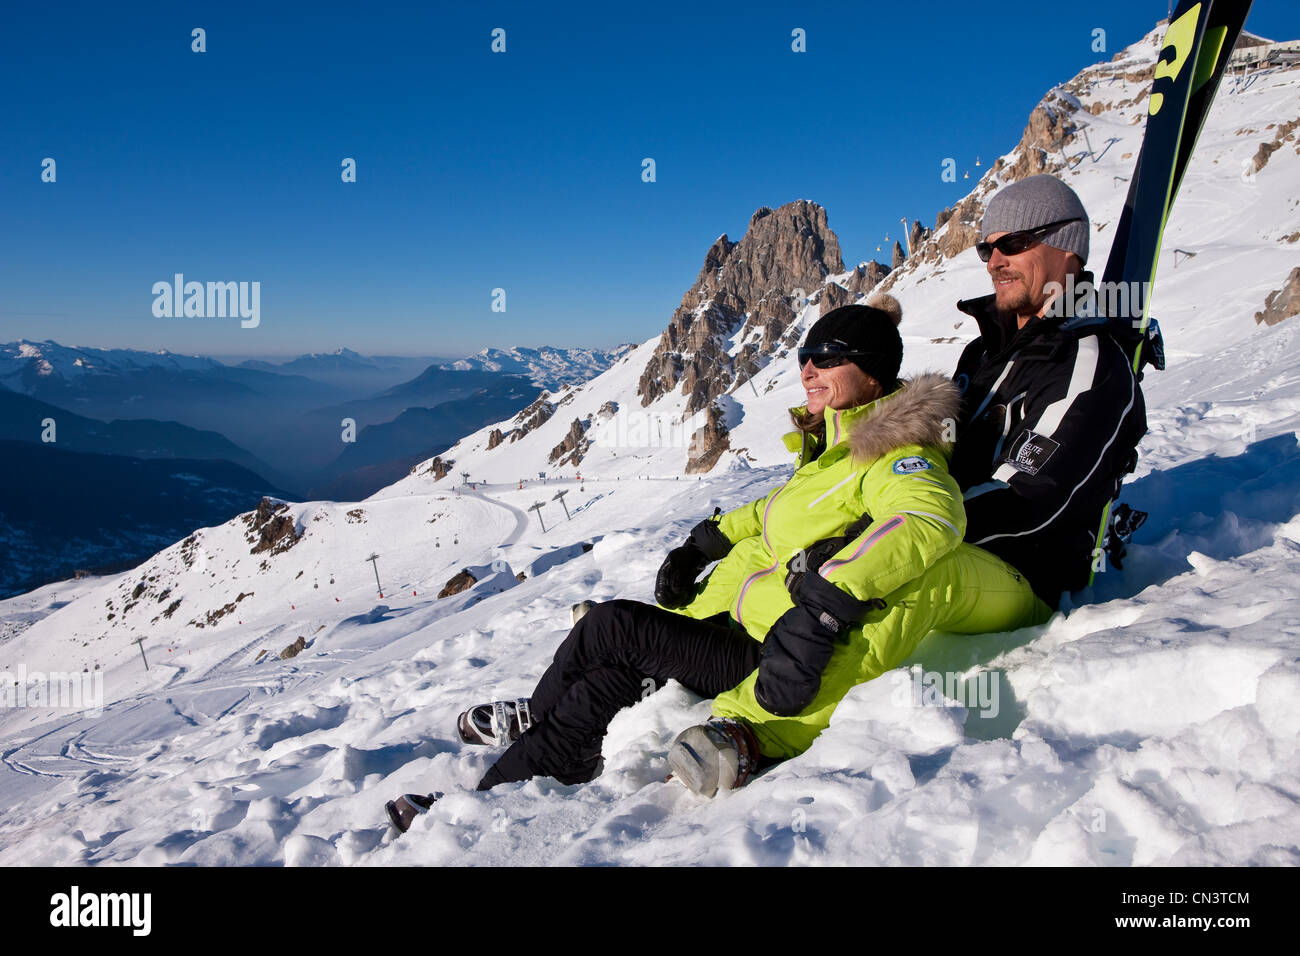 France, Savoie, Méribel, Ski slopes of 3 valleys, couple with the winter sports with a view of the Croix de - Stock Image